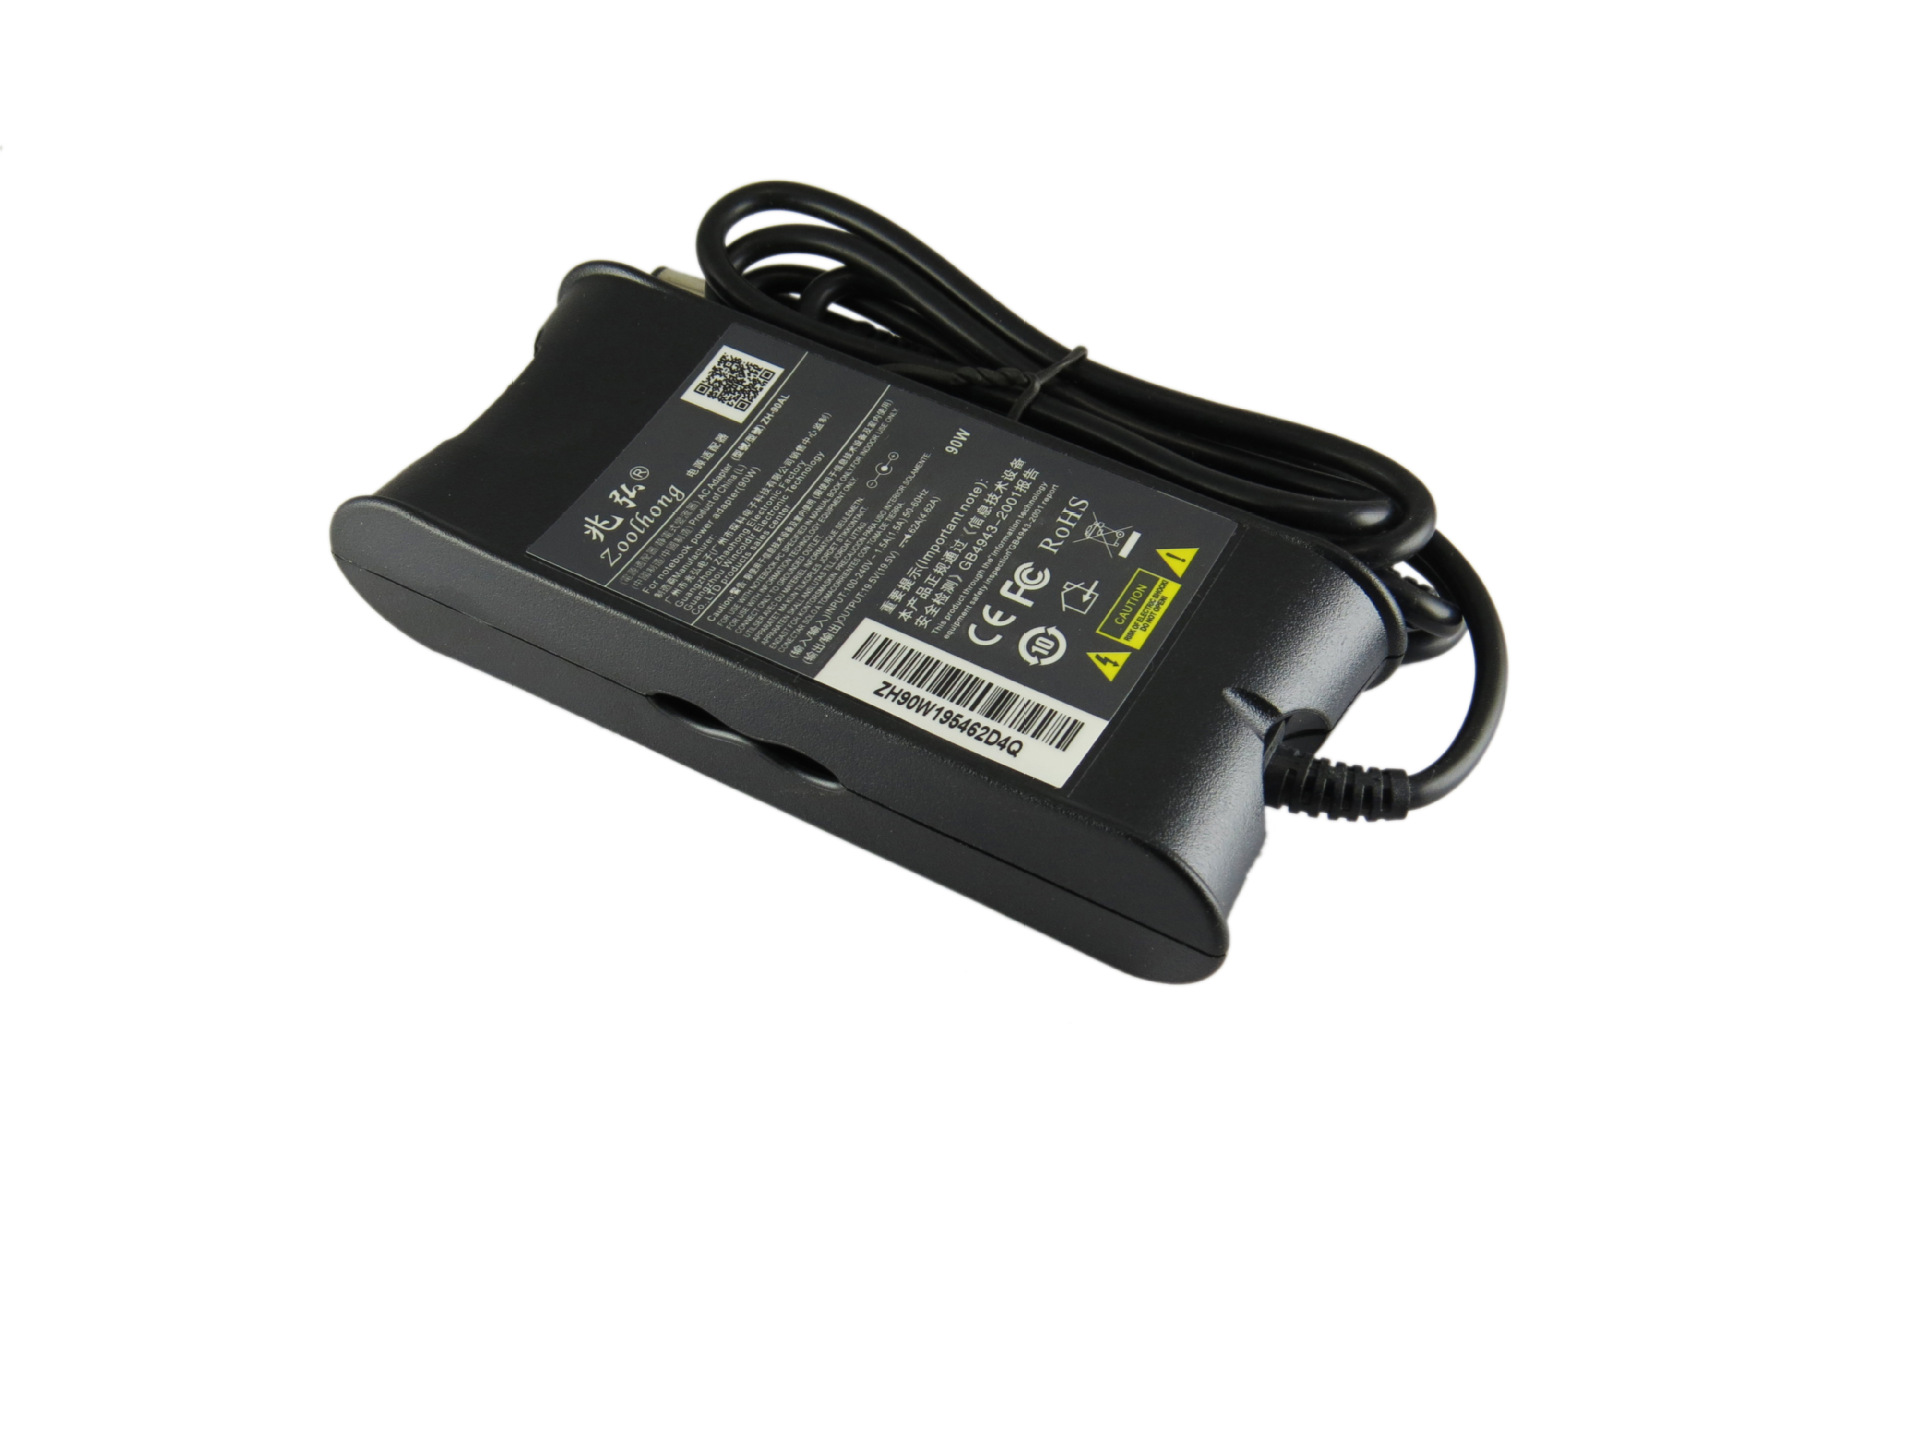 19.5 V 3.34A 65 W AC Laptop Power Adapter Charger Untuk DELL Latitude D500 D505 D520 D530 D530 D531 D600 D610 D620 7.4mm * 5.0mm